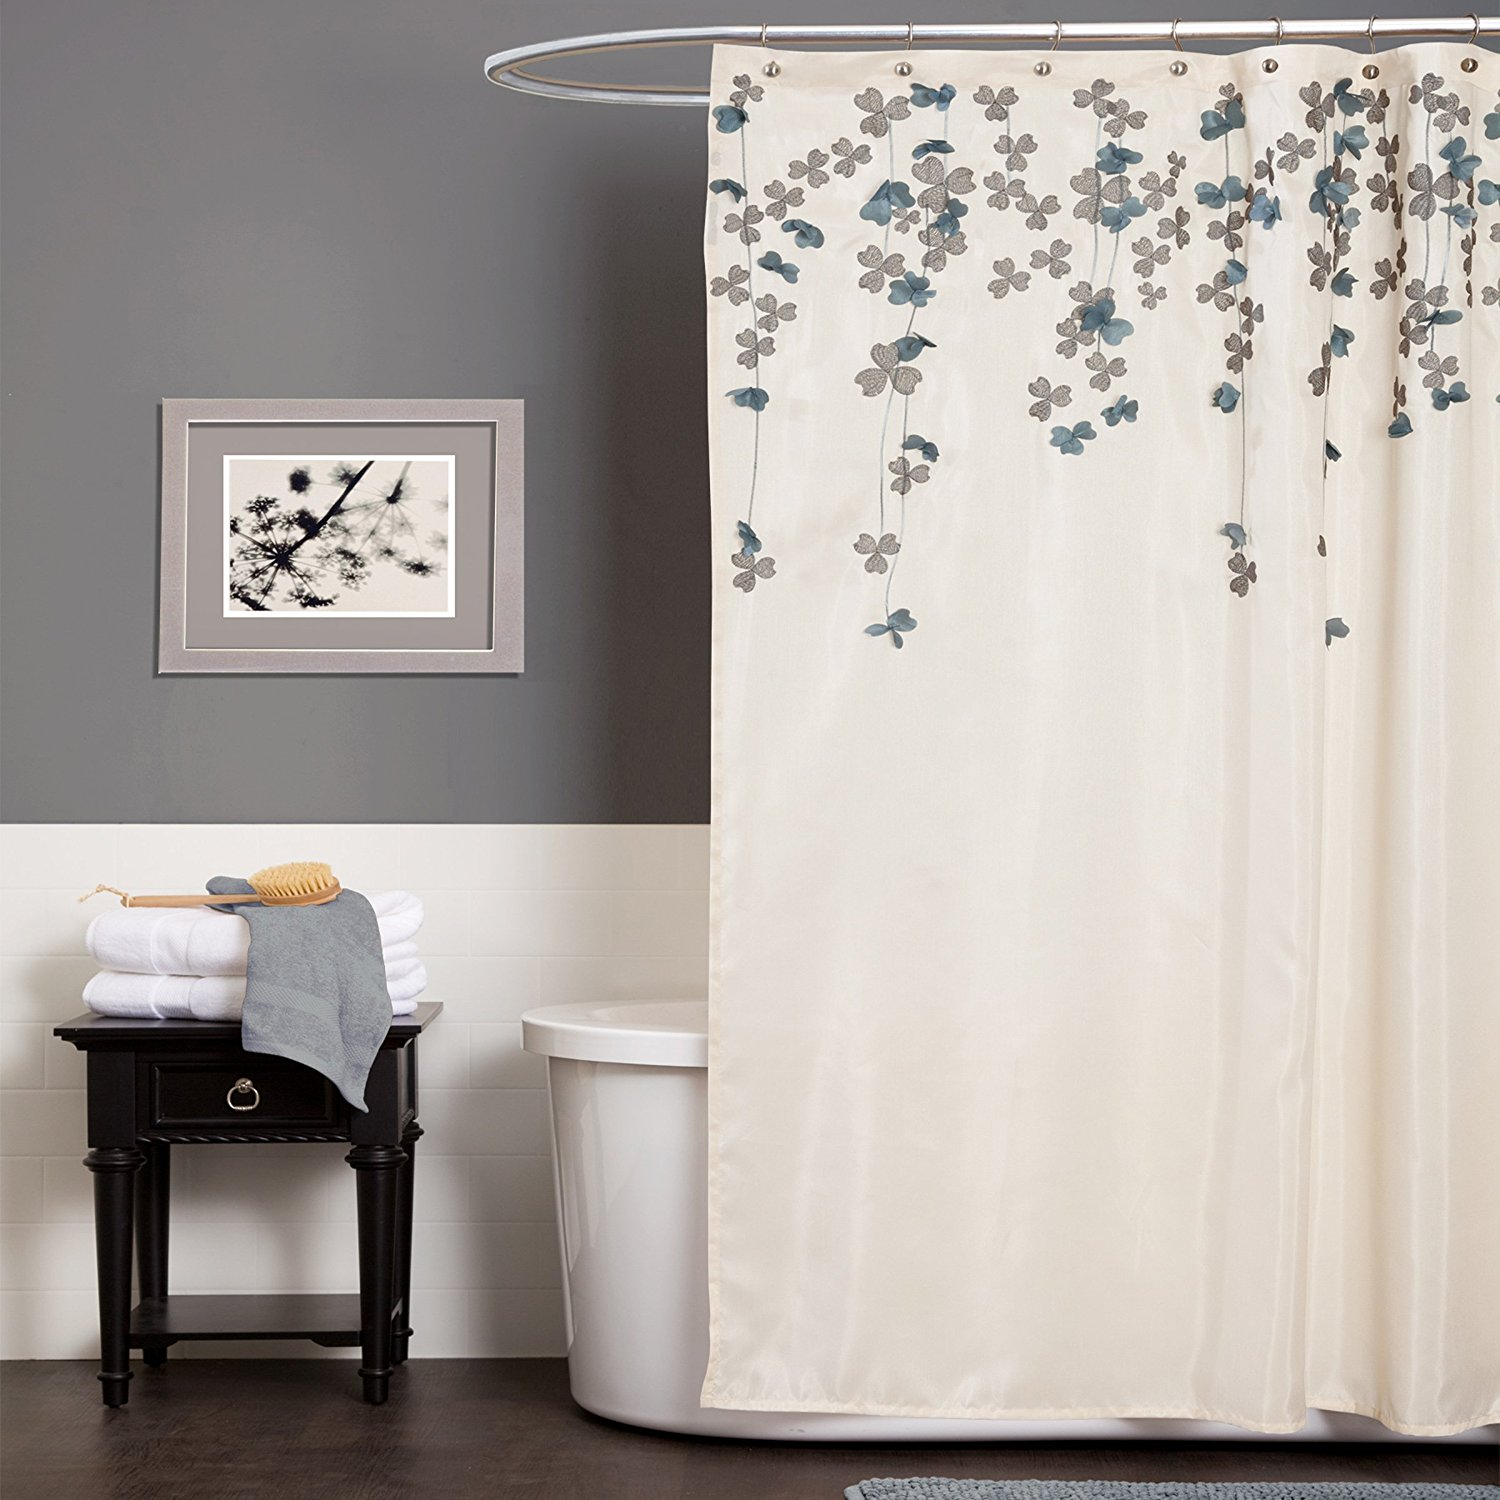 Beautiful Bathroom Decor Ideas with Floral Shower Curtain: Floral Shower Curtain | Floral Shower Curtain | Shower Curtain Free Shipping